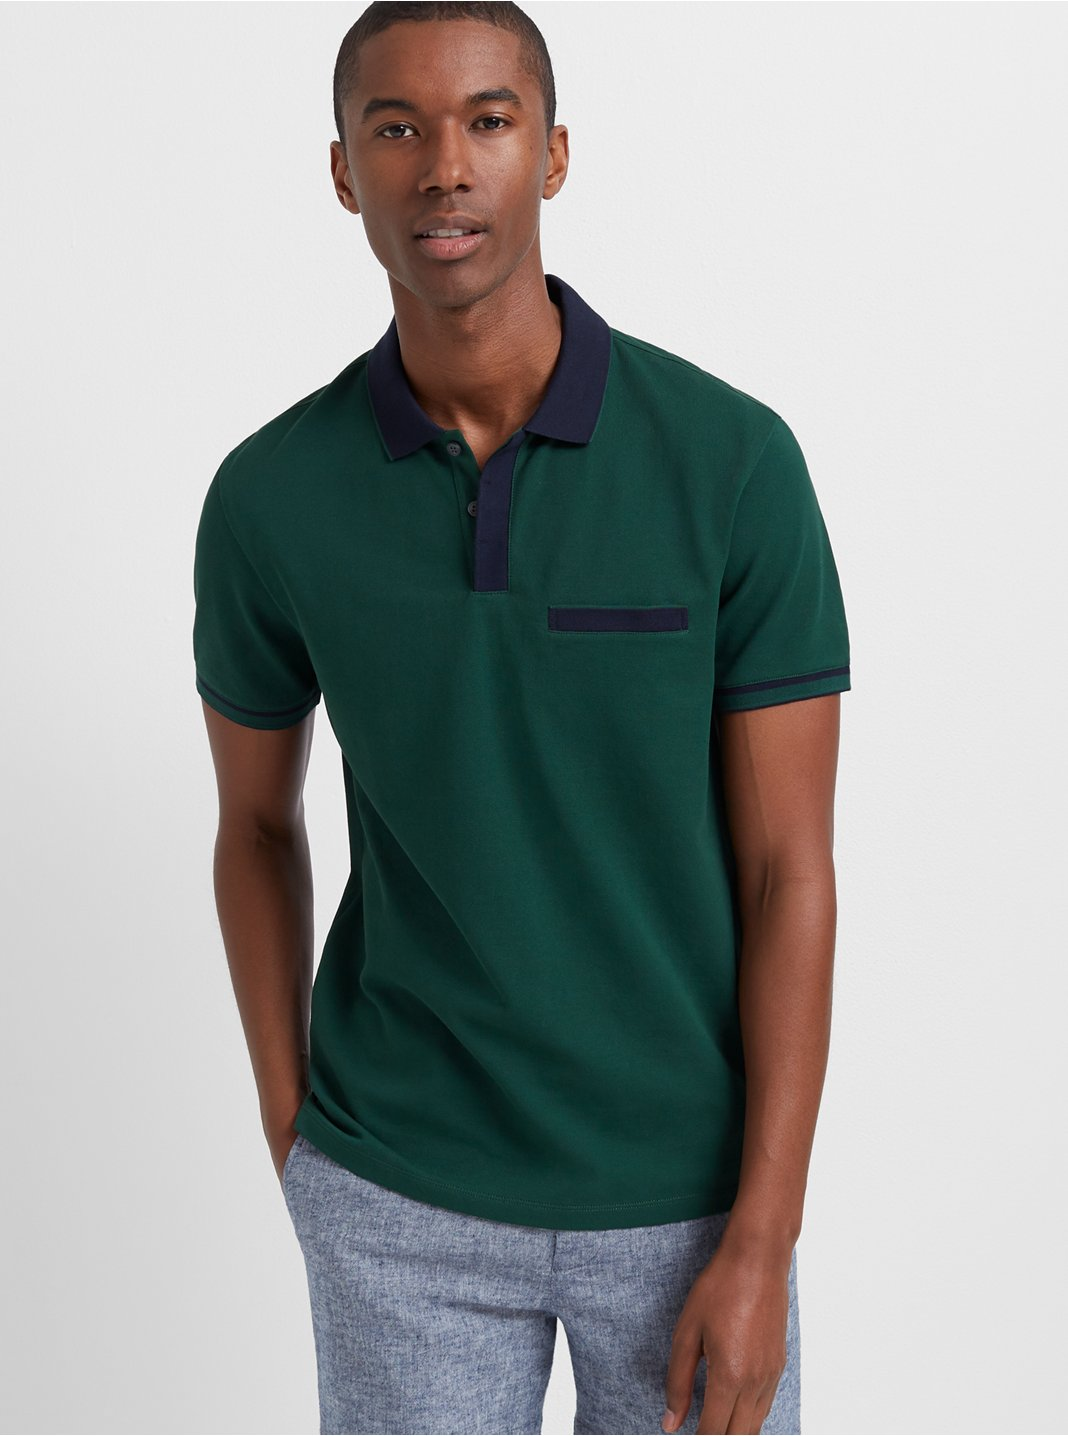 Welt Pocket Polo